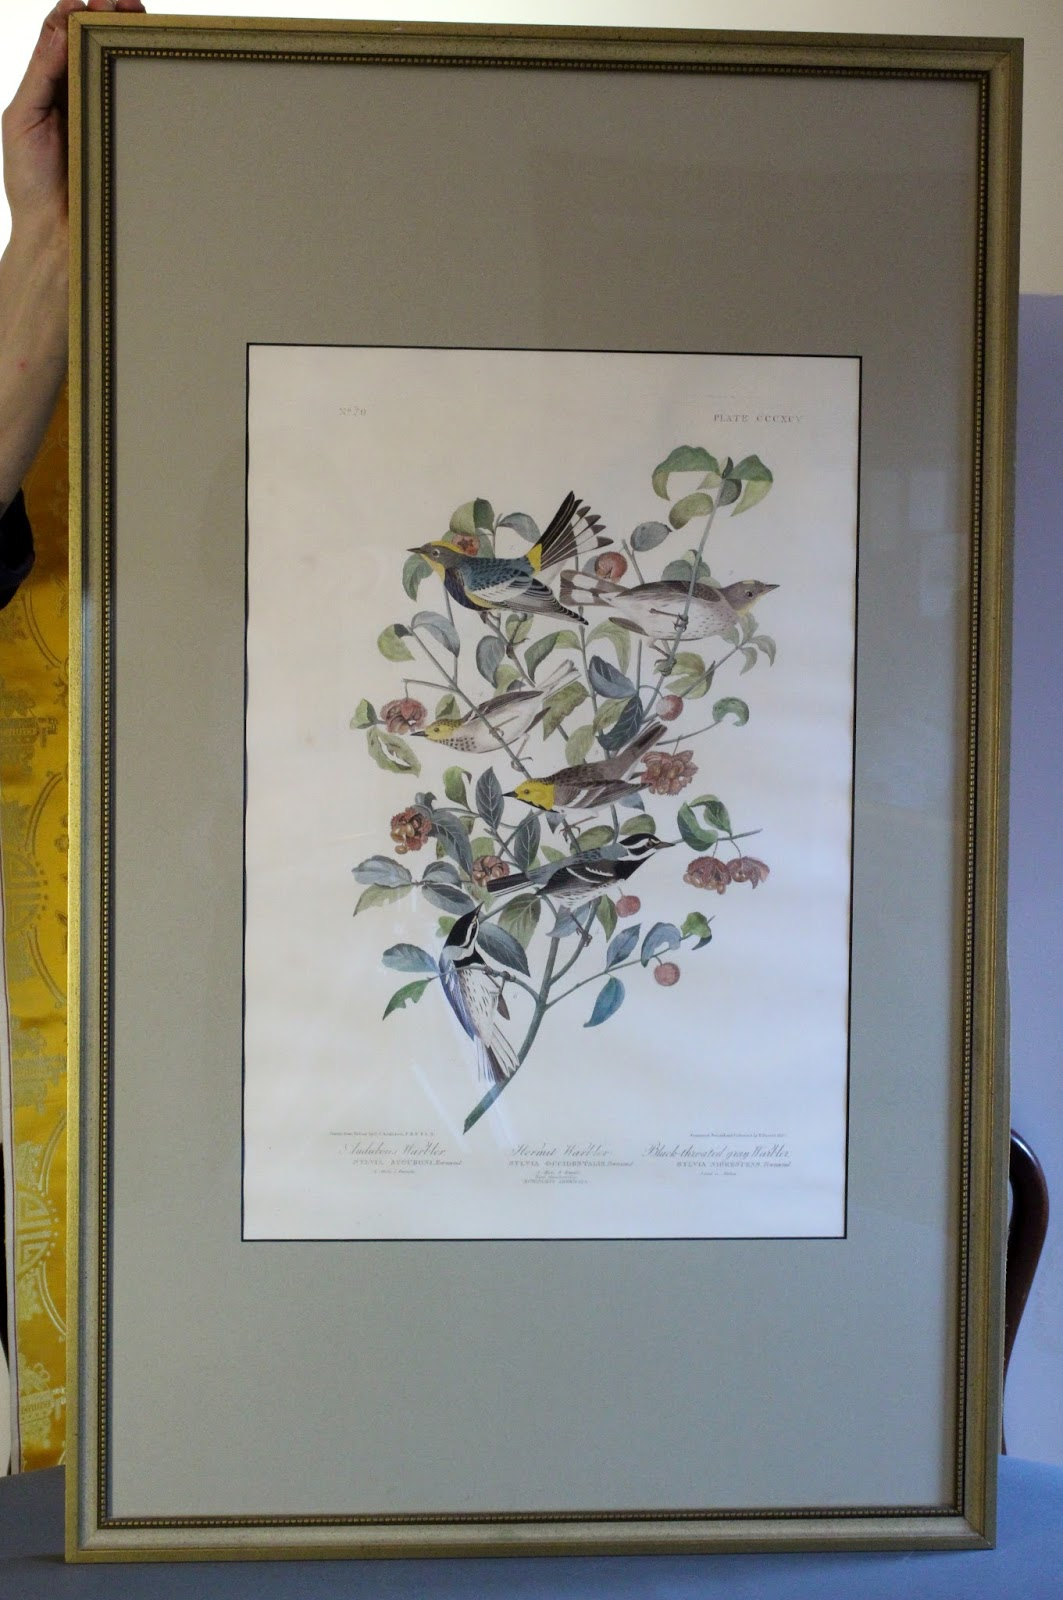 An Original Framed Print Of Audubon Warbler Hermit Black Throated C1827 1838 From Birds America The Elephant Folio